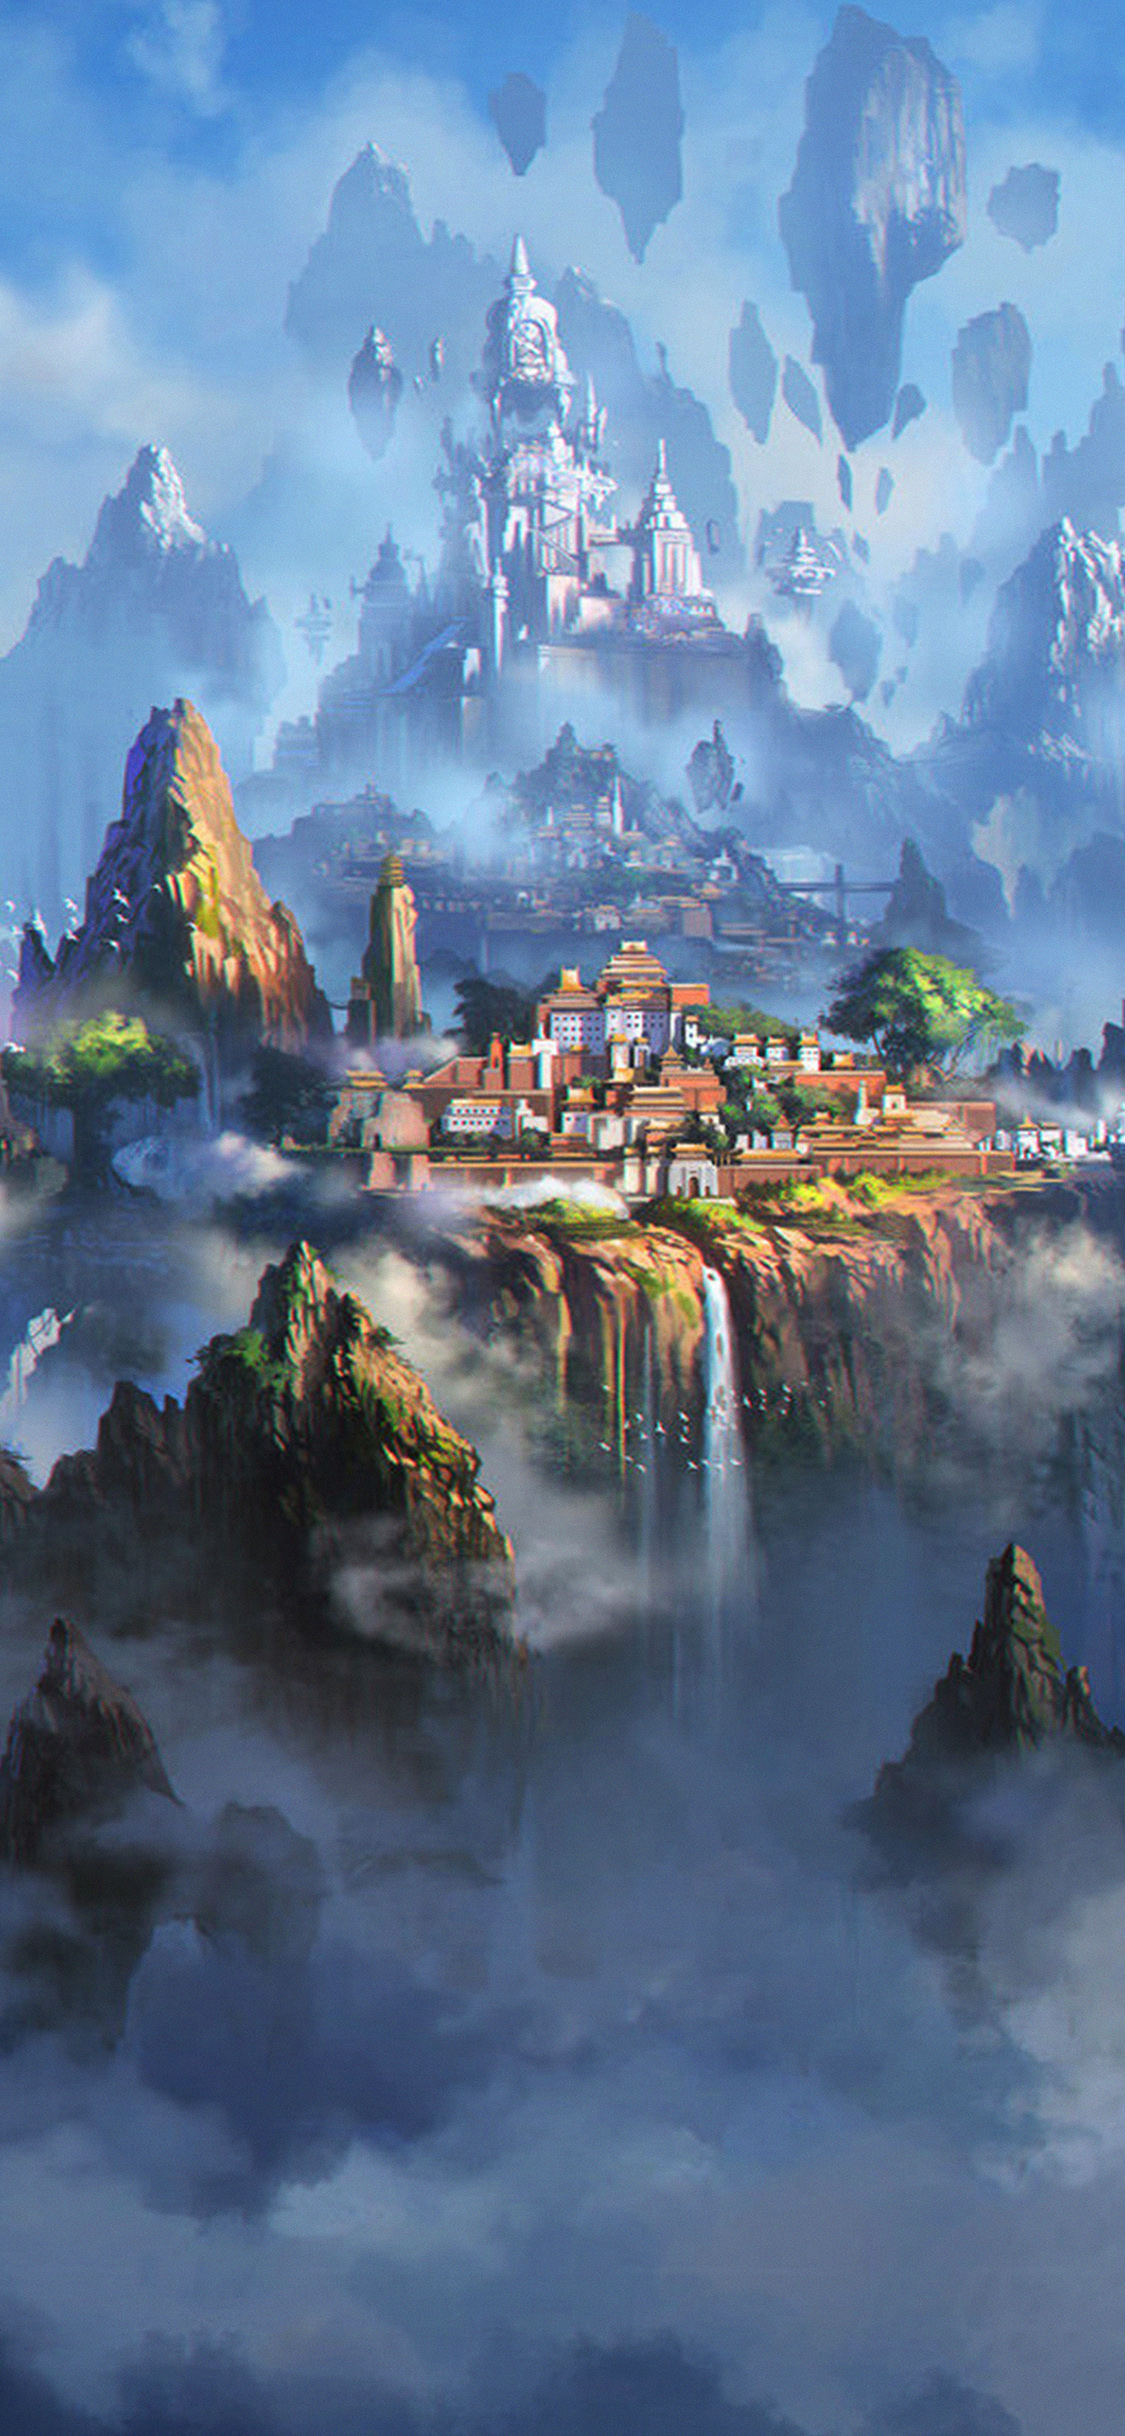 iPhoneXpapers.com-Apple-iPhone-wallpaper-av35-cloud-town-fantasy-anime-liang-xing-illustration-art